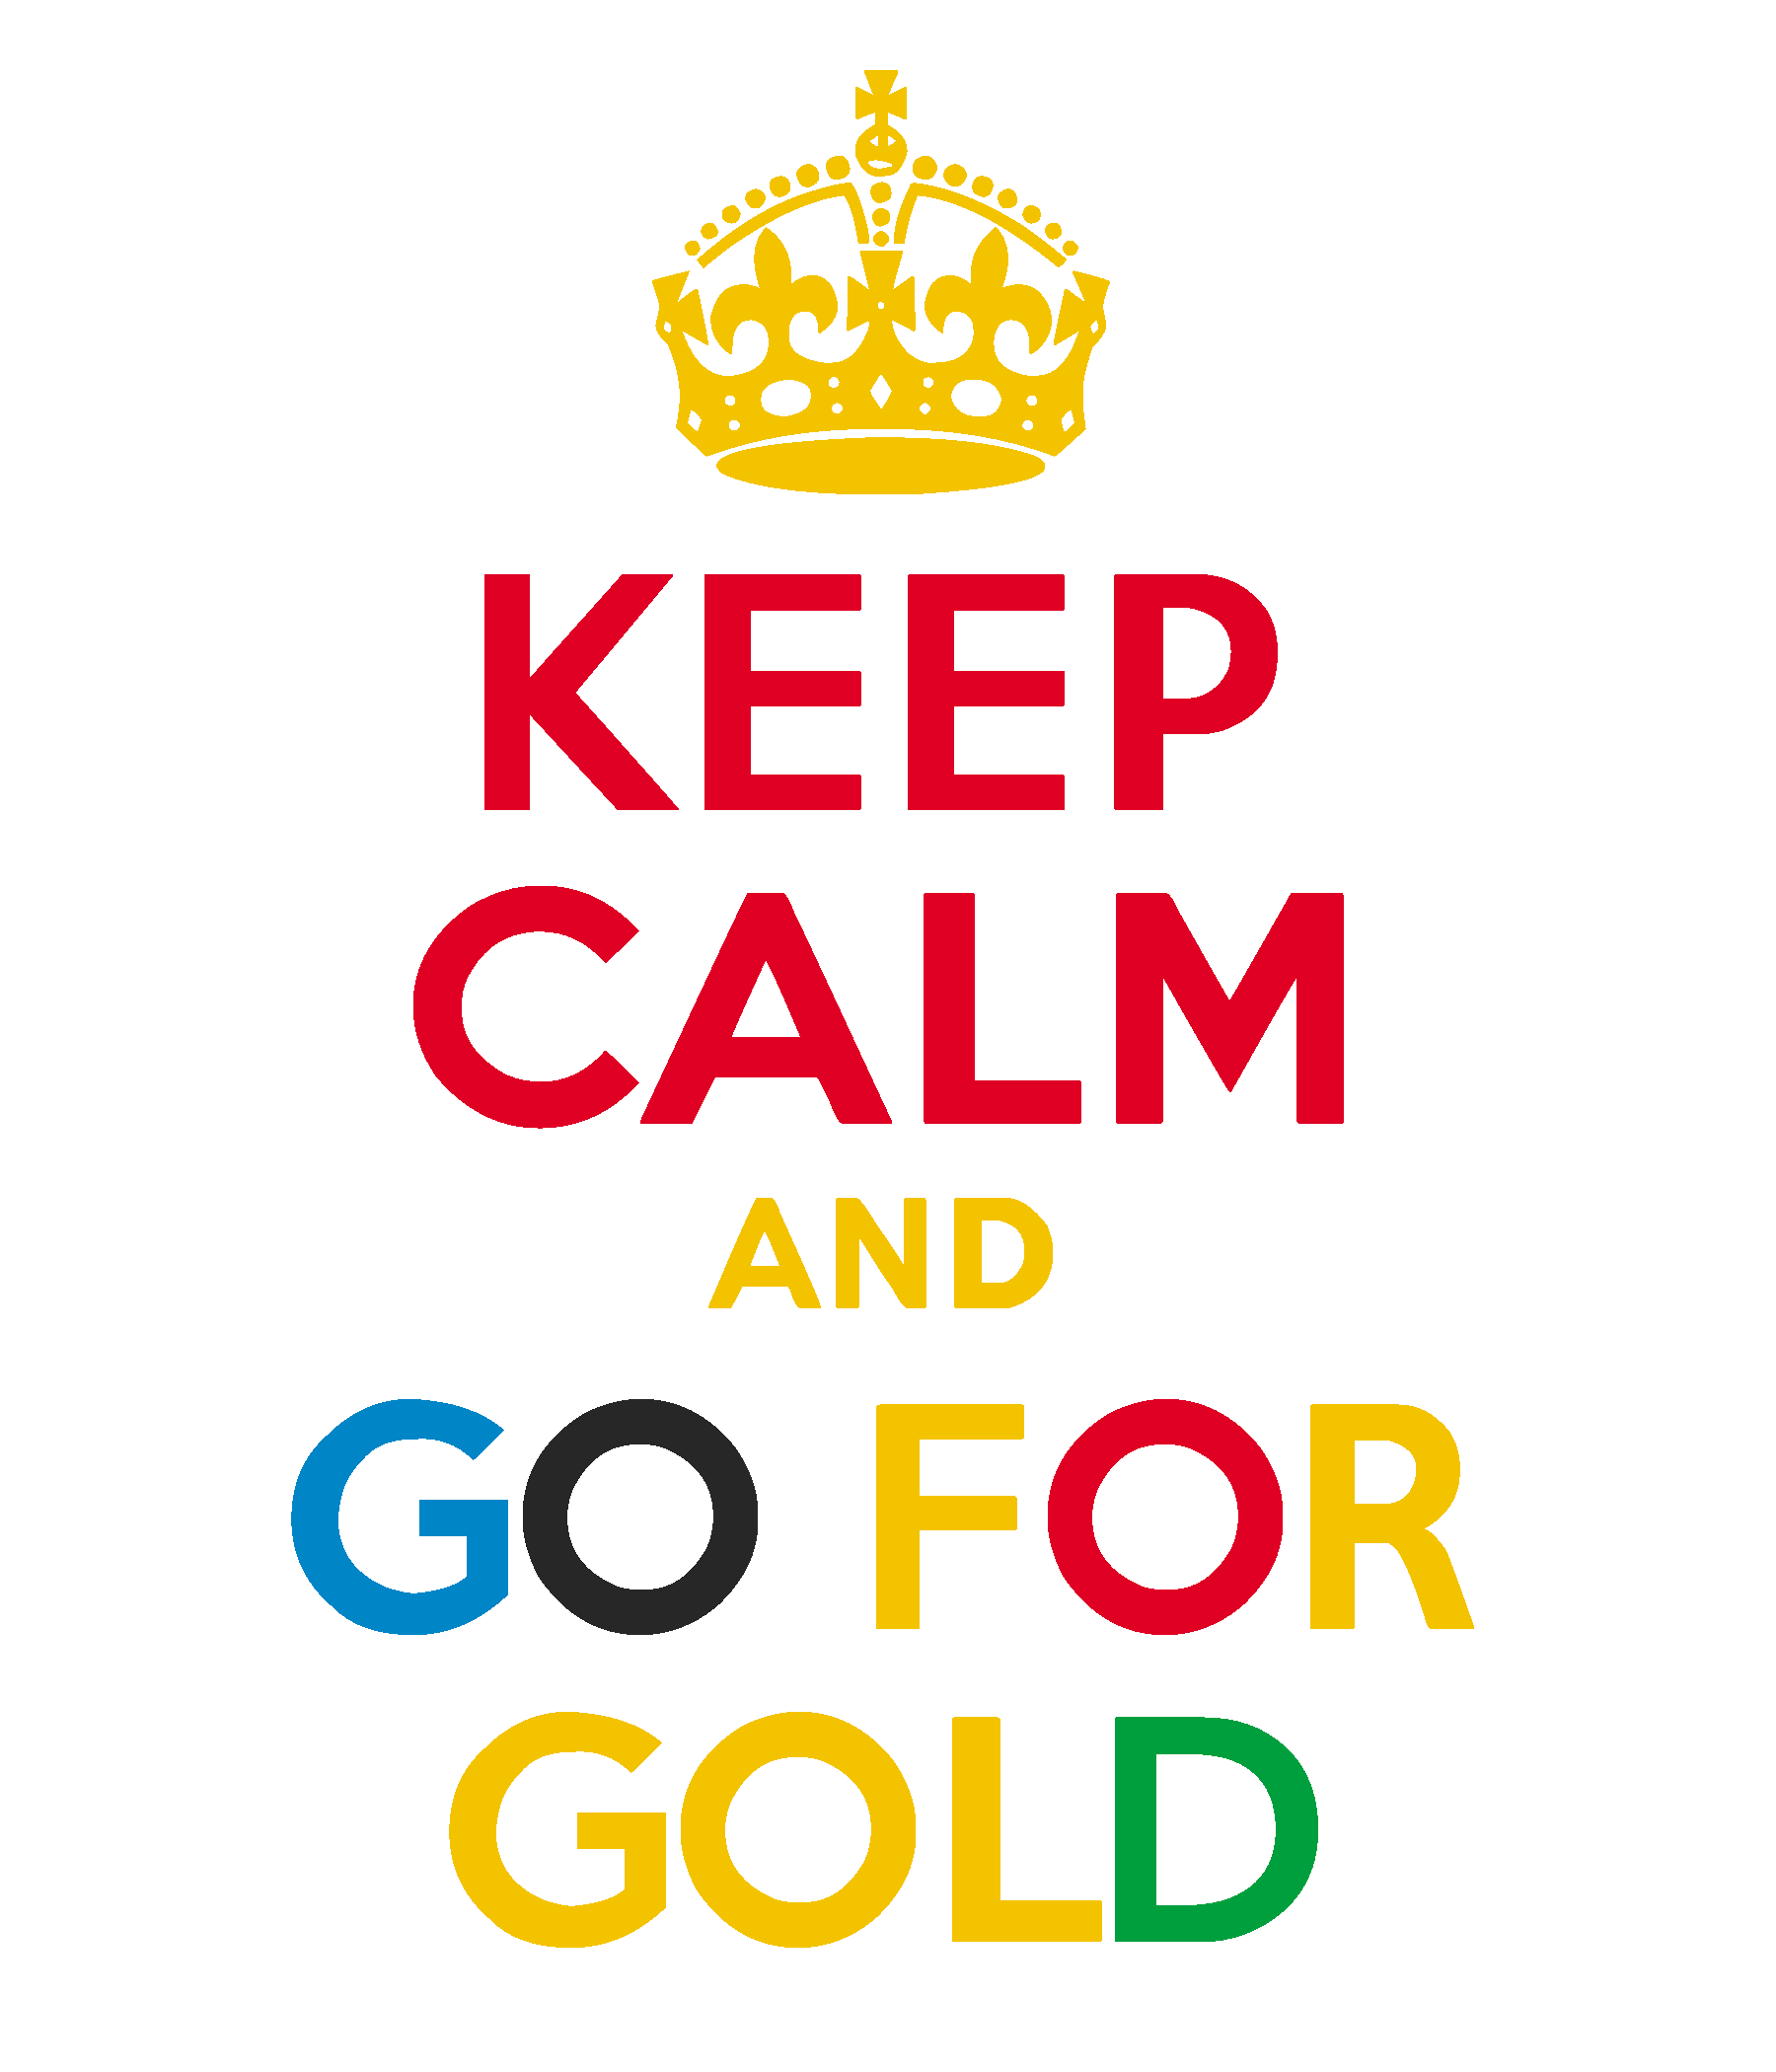 keep_calm_and_go_for_gold_by_scrabblicious-d486www1